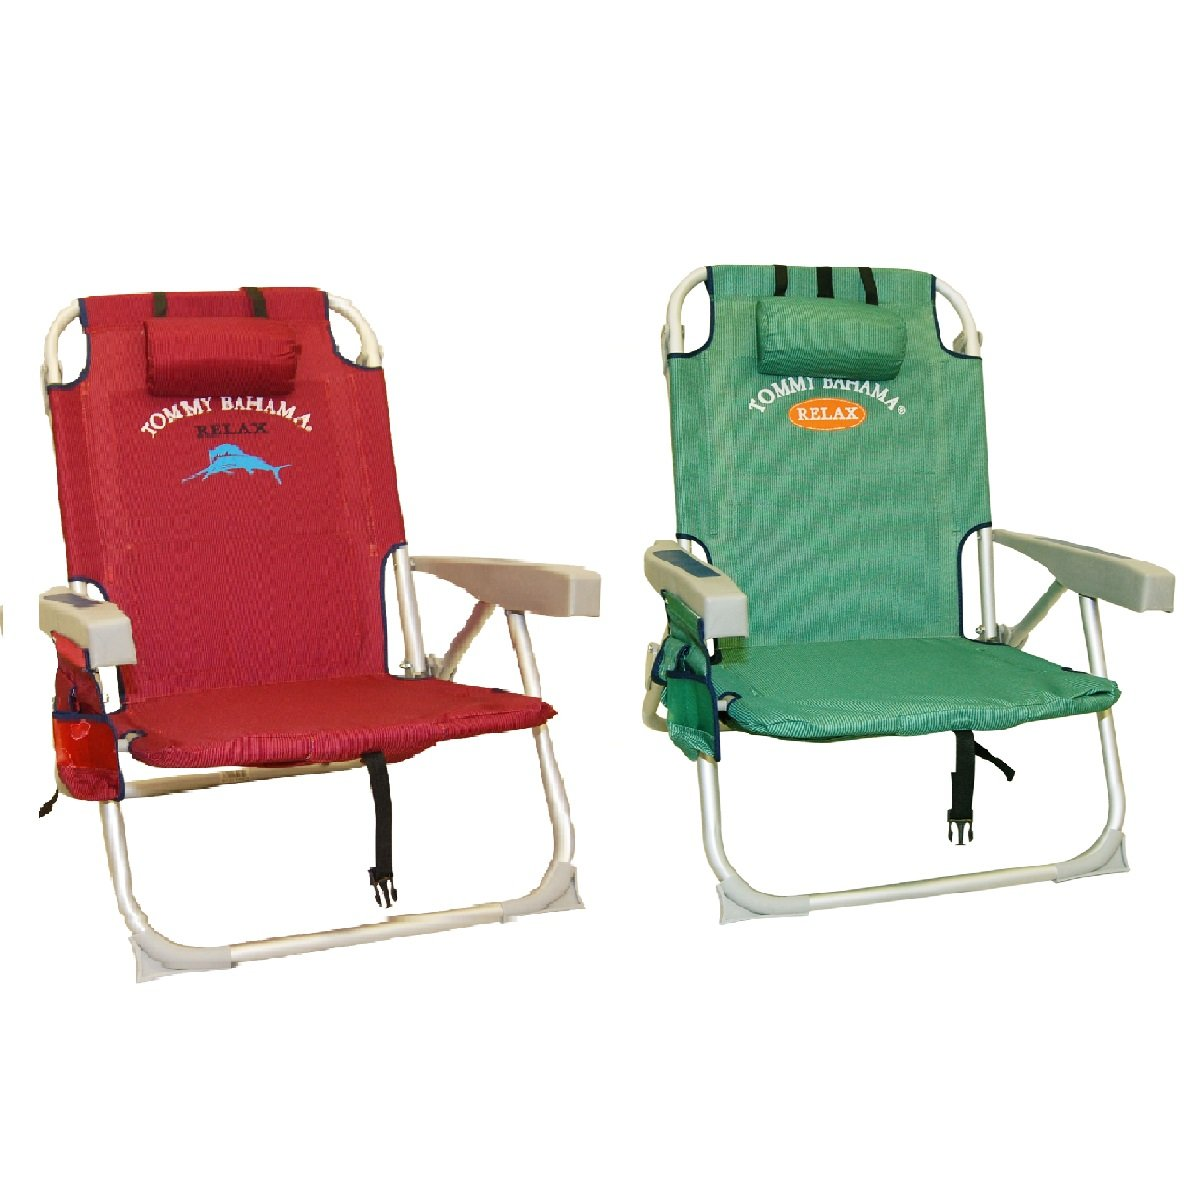 Tommy Bahama Backpack Cooler Chairs Reviews 20162017 on